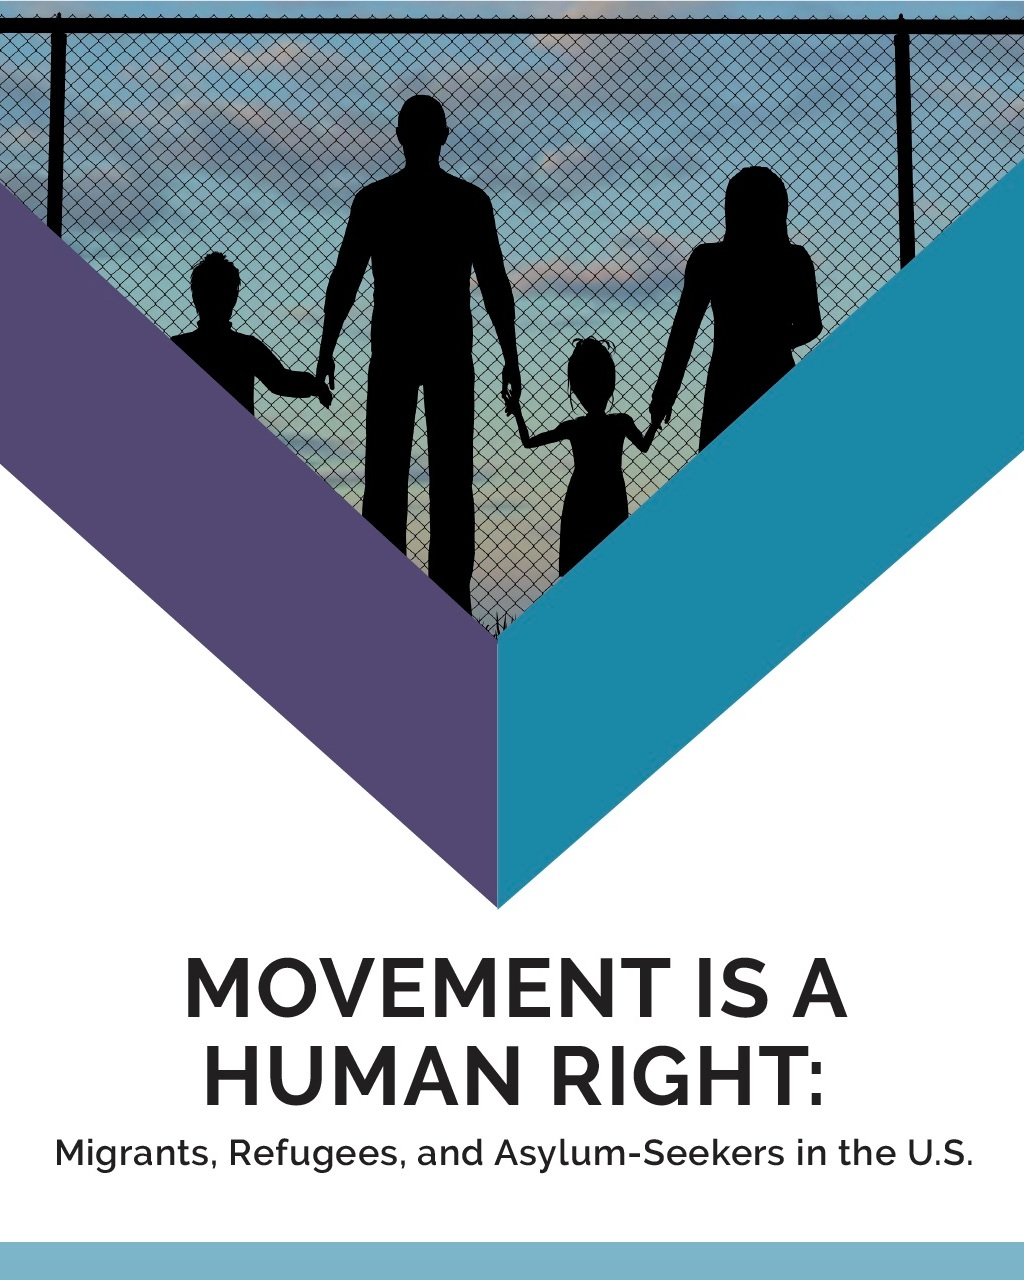 Movement is a Human Right cover image featuring the silhouette of a migrant family (two adults and two children) in front of a chainlink fence)